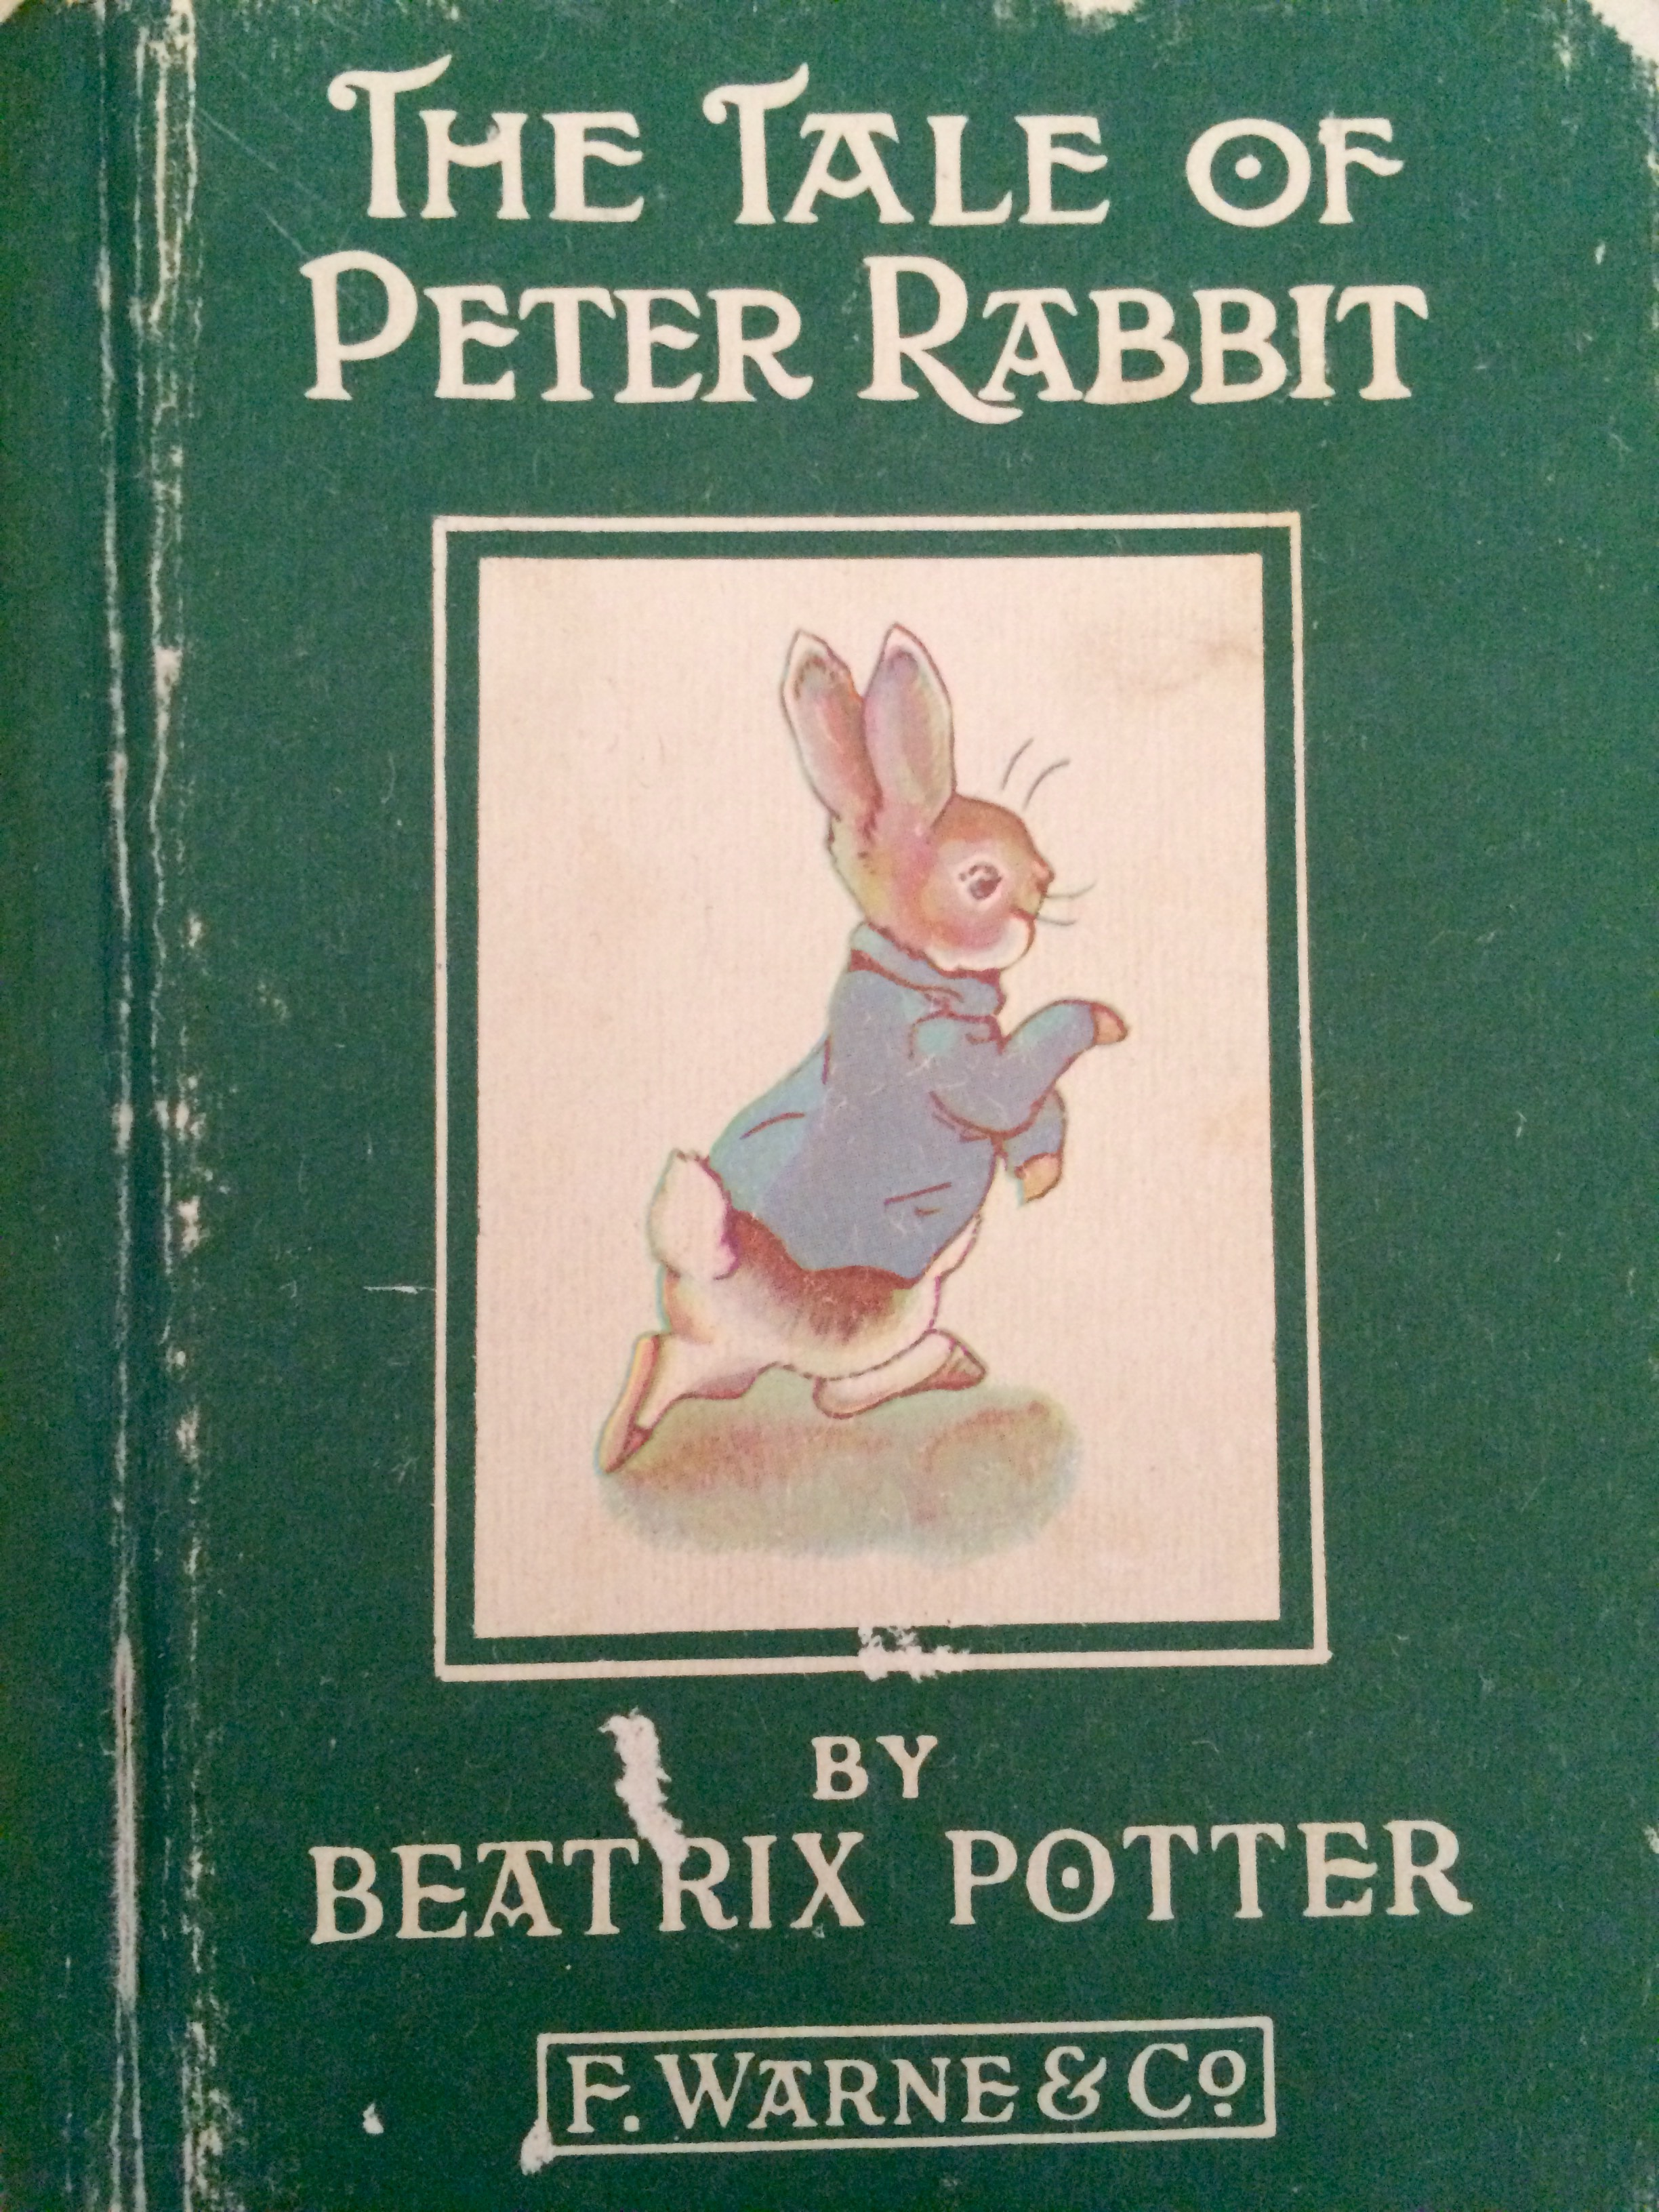 One of two Beatrix Potter books given by my parents to my daughter Lisa, 1970